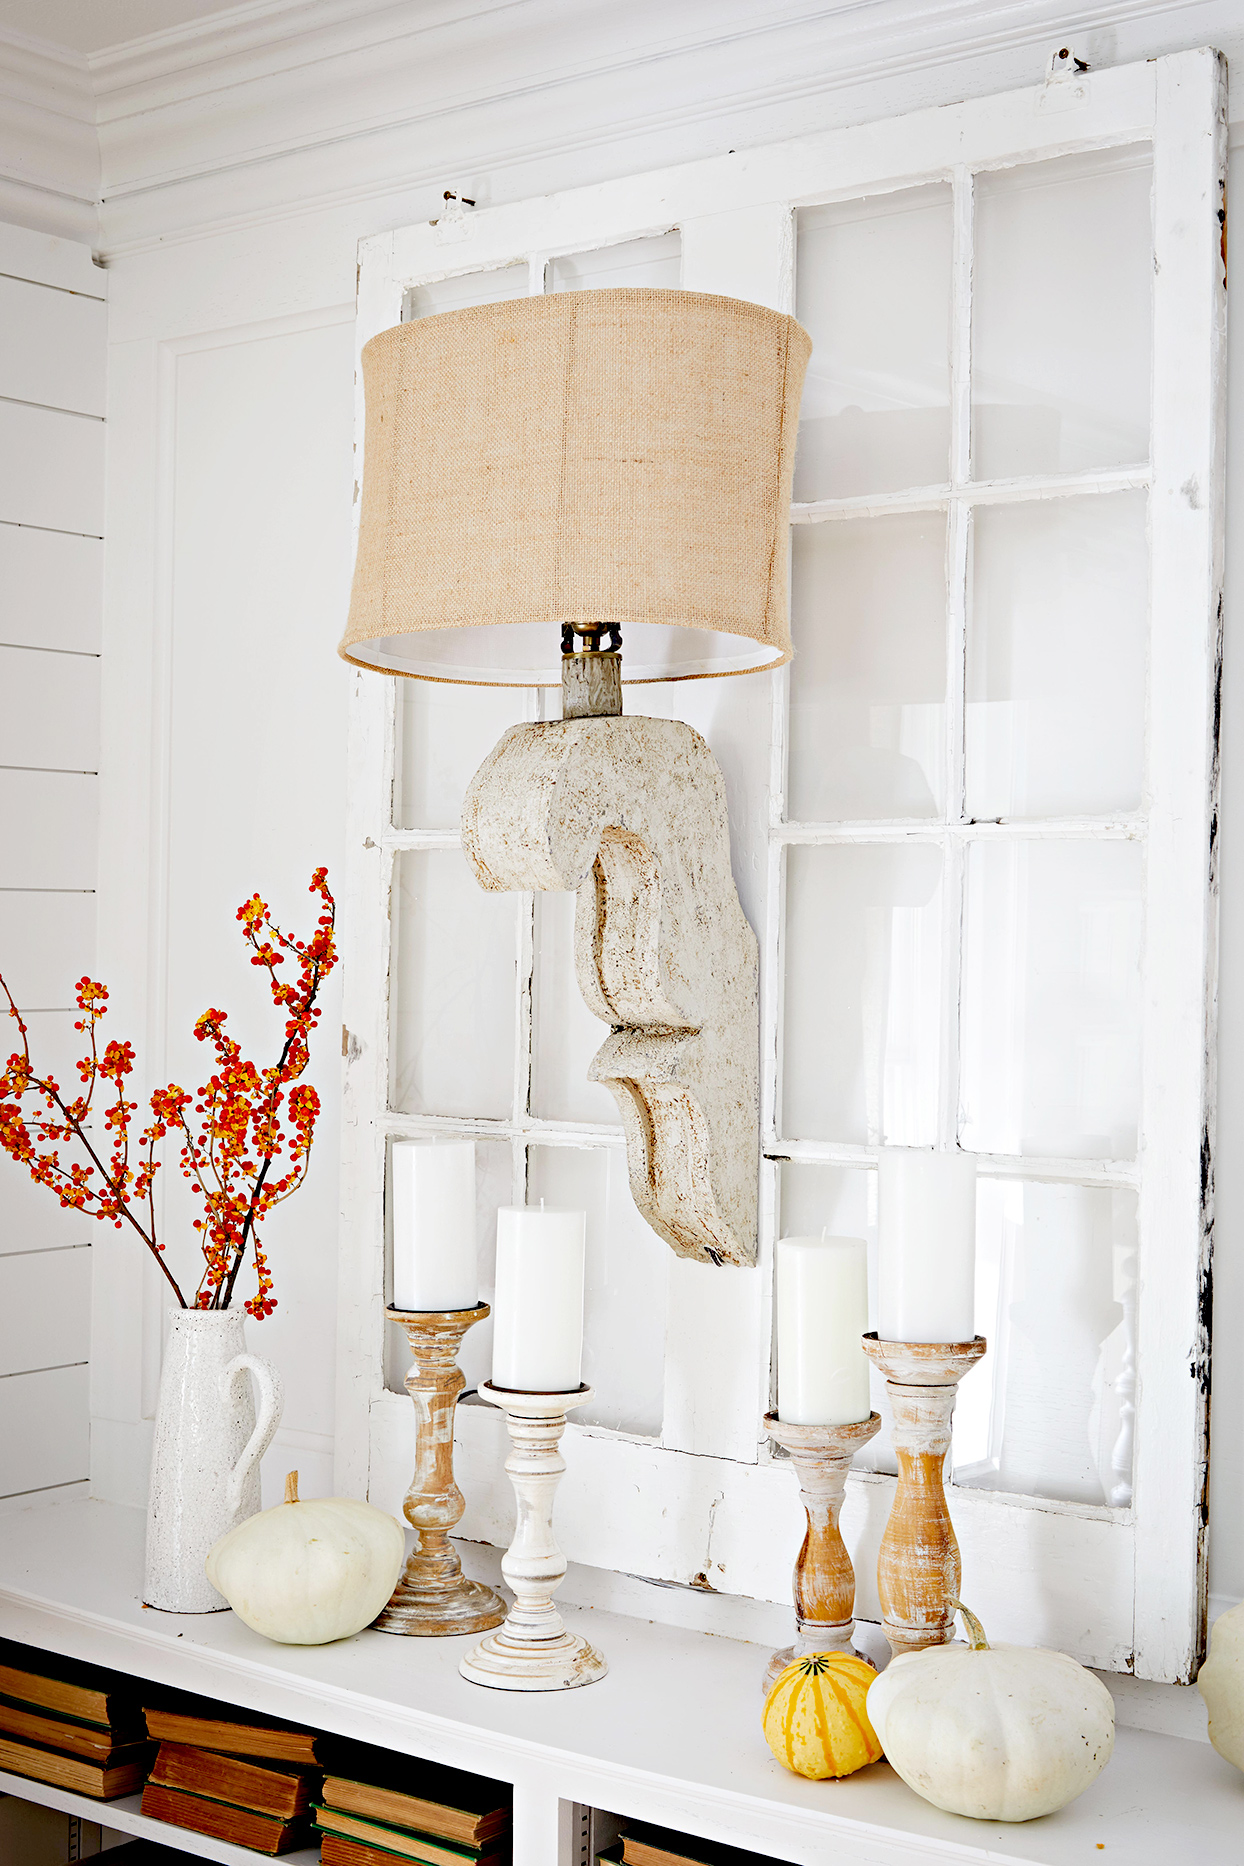 Window decoration with lamp, candles